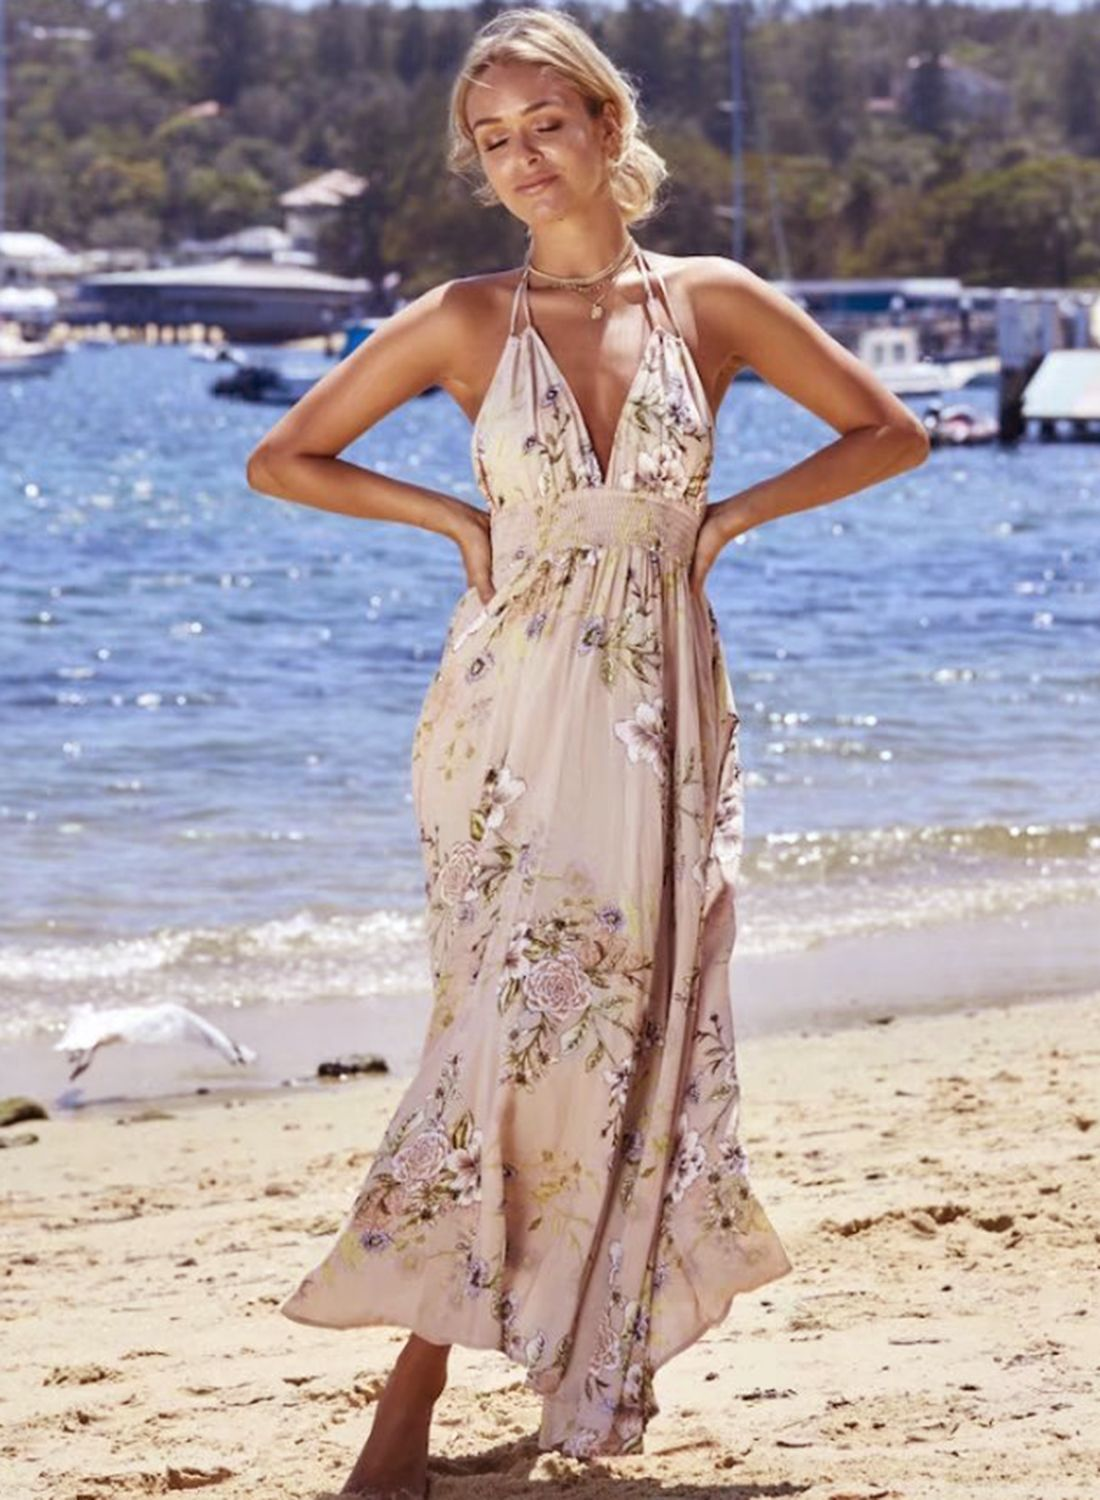 ff46667faaf Bohemian V Neck Sleeveless Backless Floral Printed Maxi Dress ...